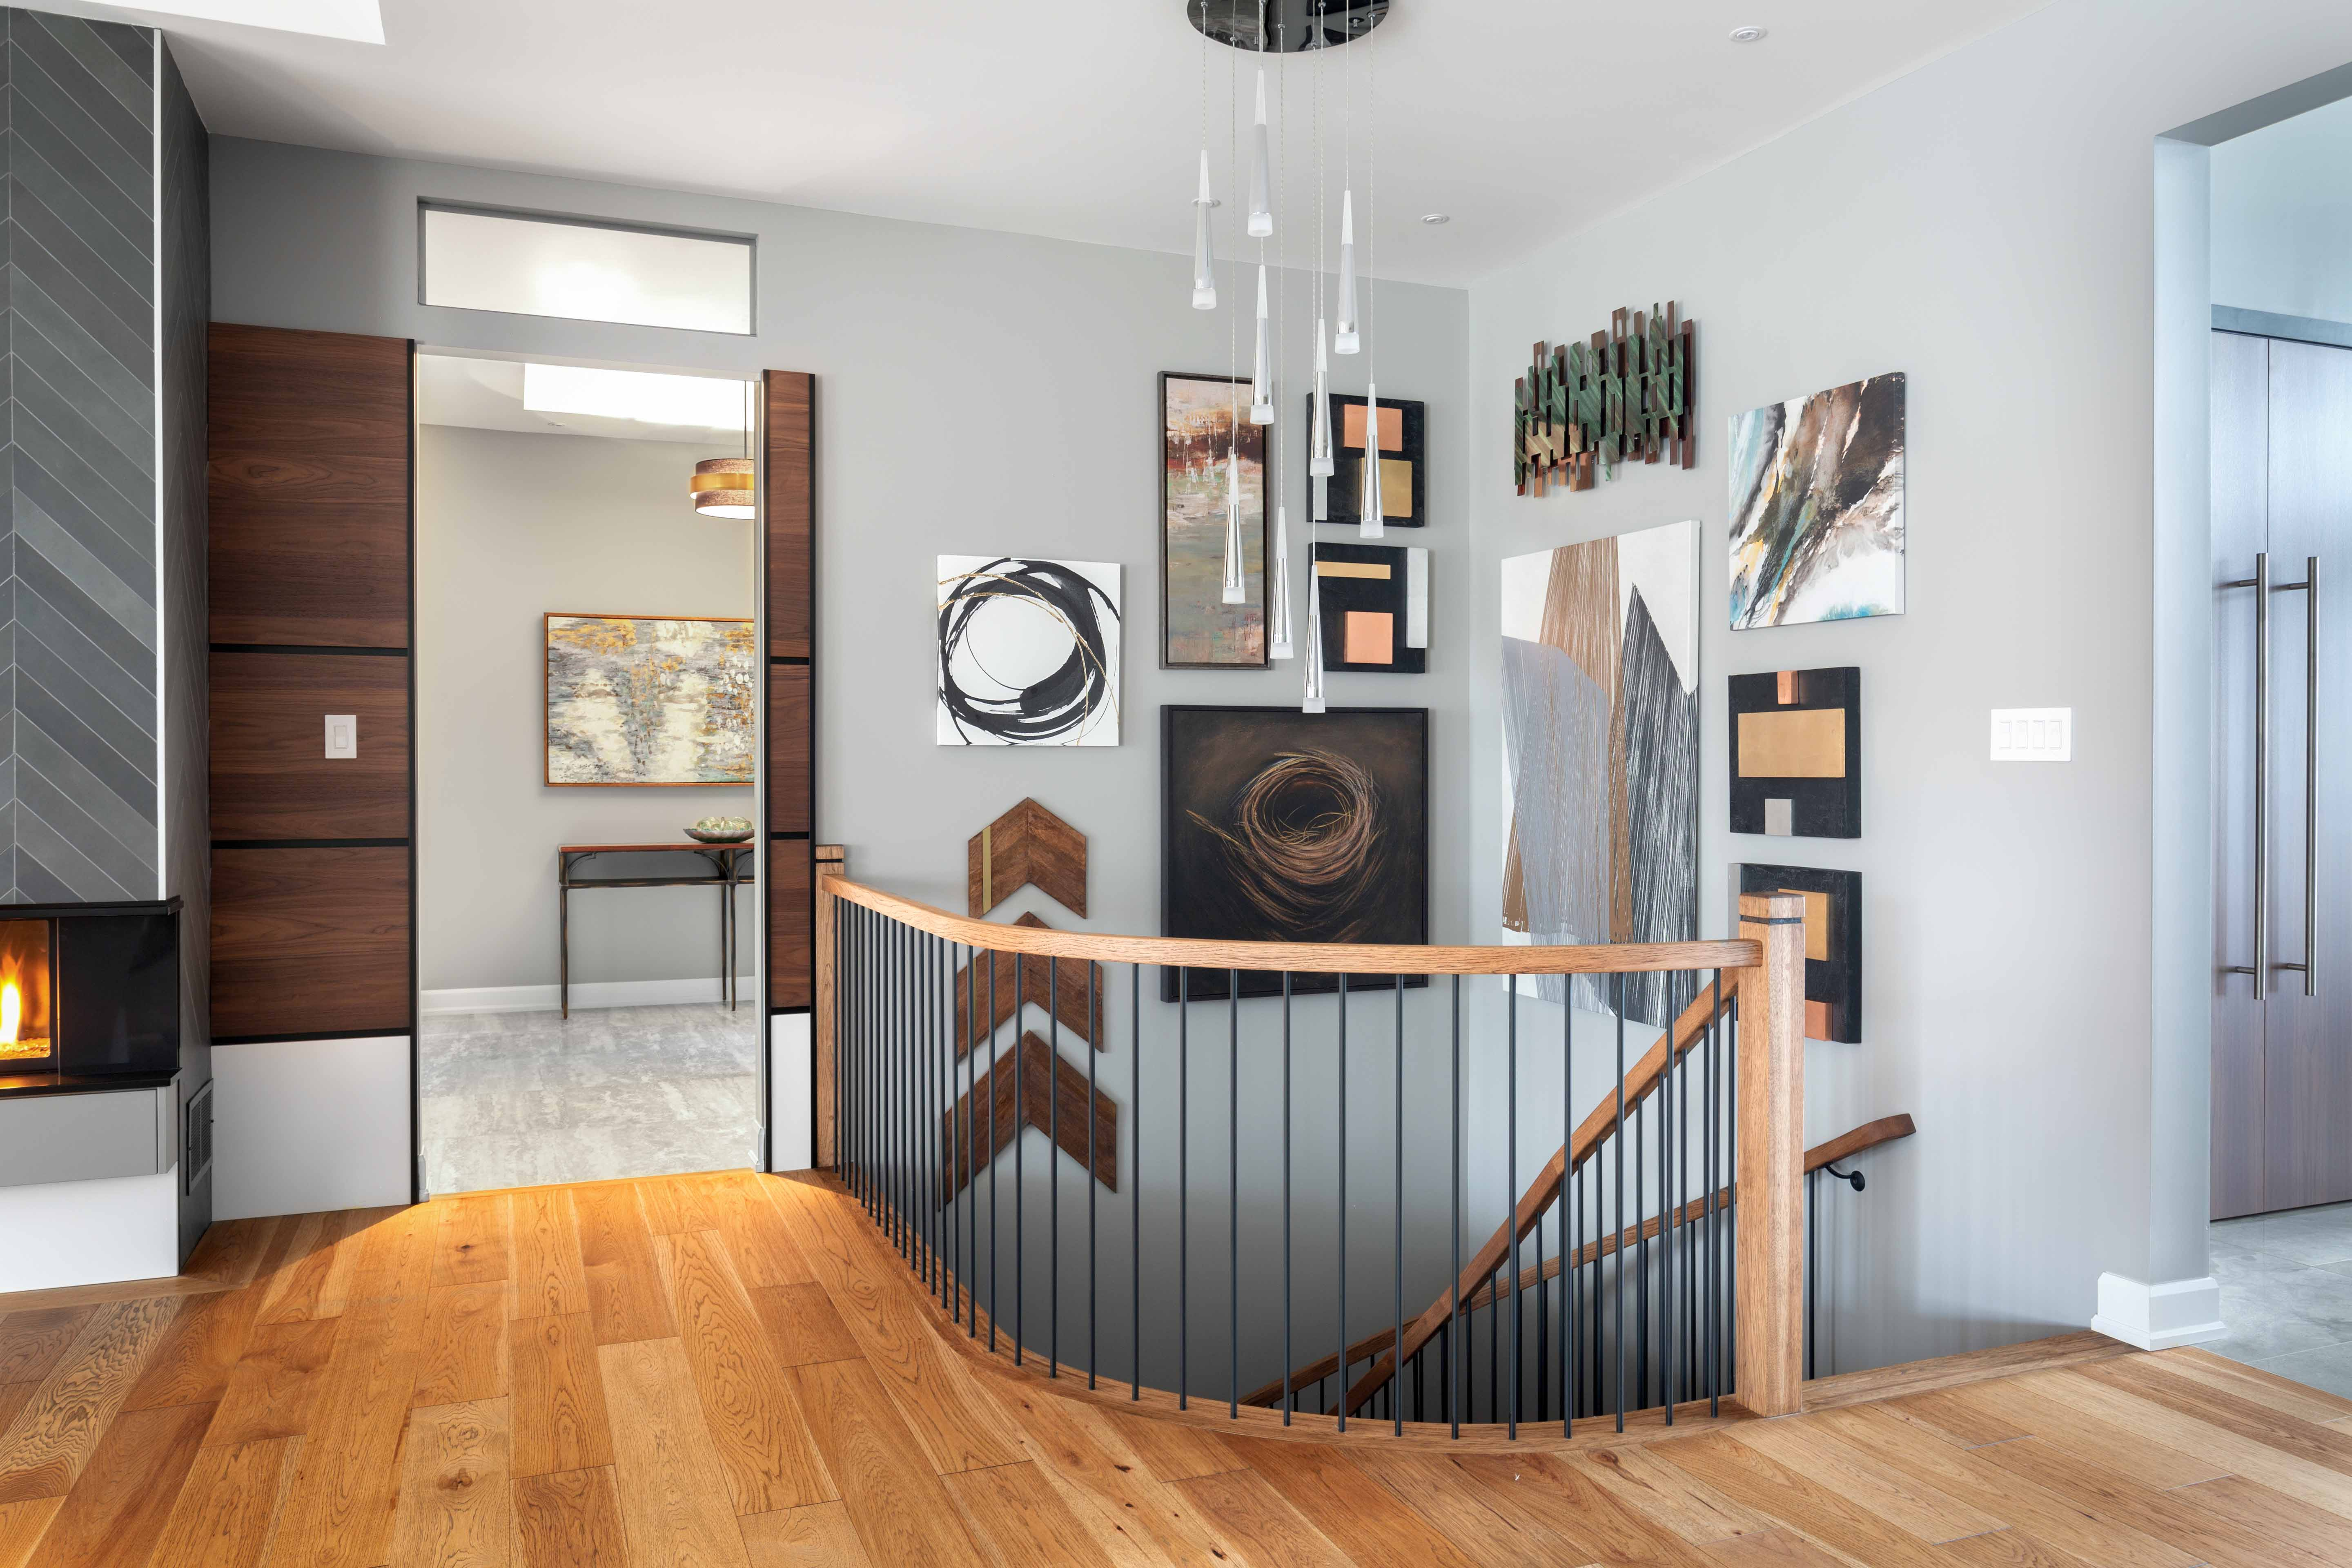 Staircase art wall